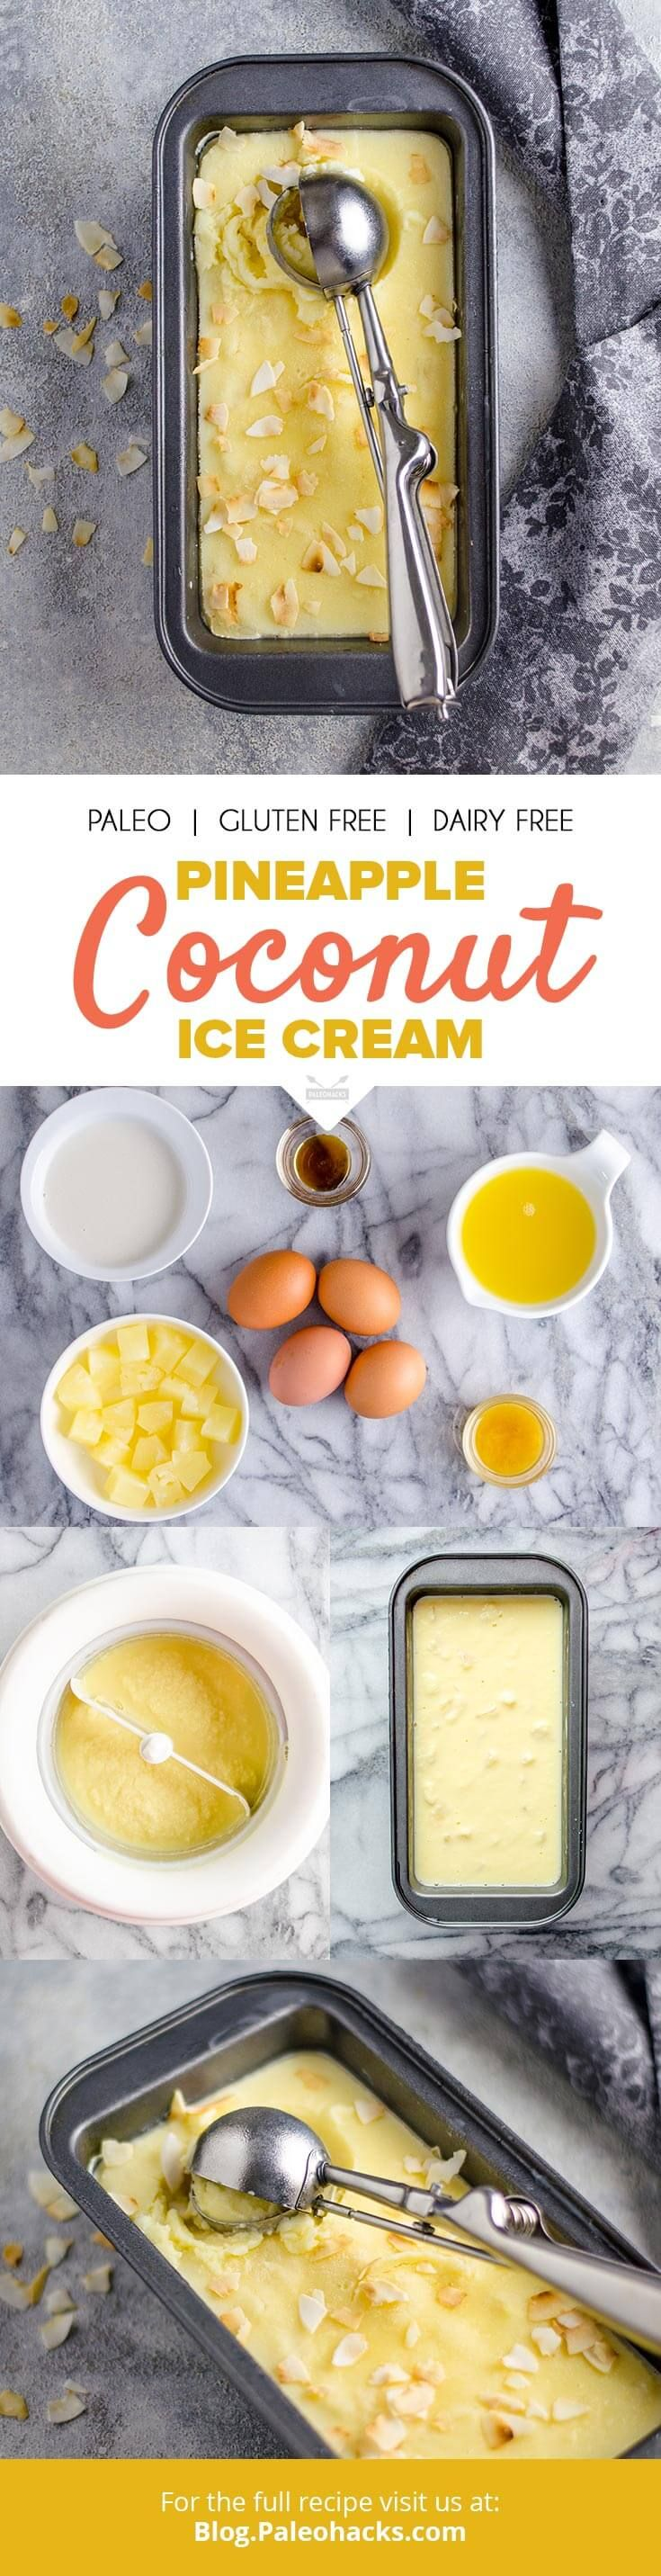 Smooth and refreshing, this tropical pineapple coconut ice cream is the perfect treat on a hot day. Get the recipe here: http://paleo.co/pinecoconuticecream